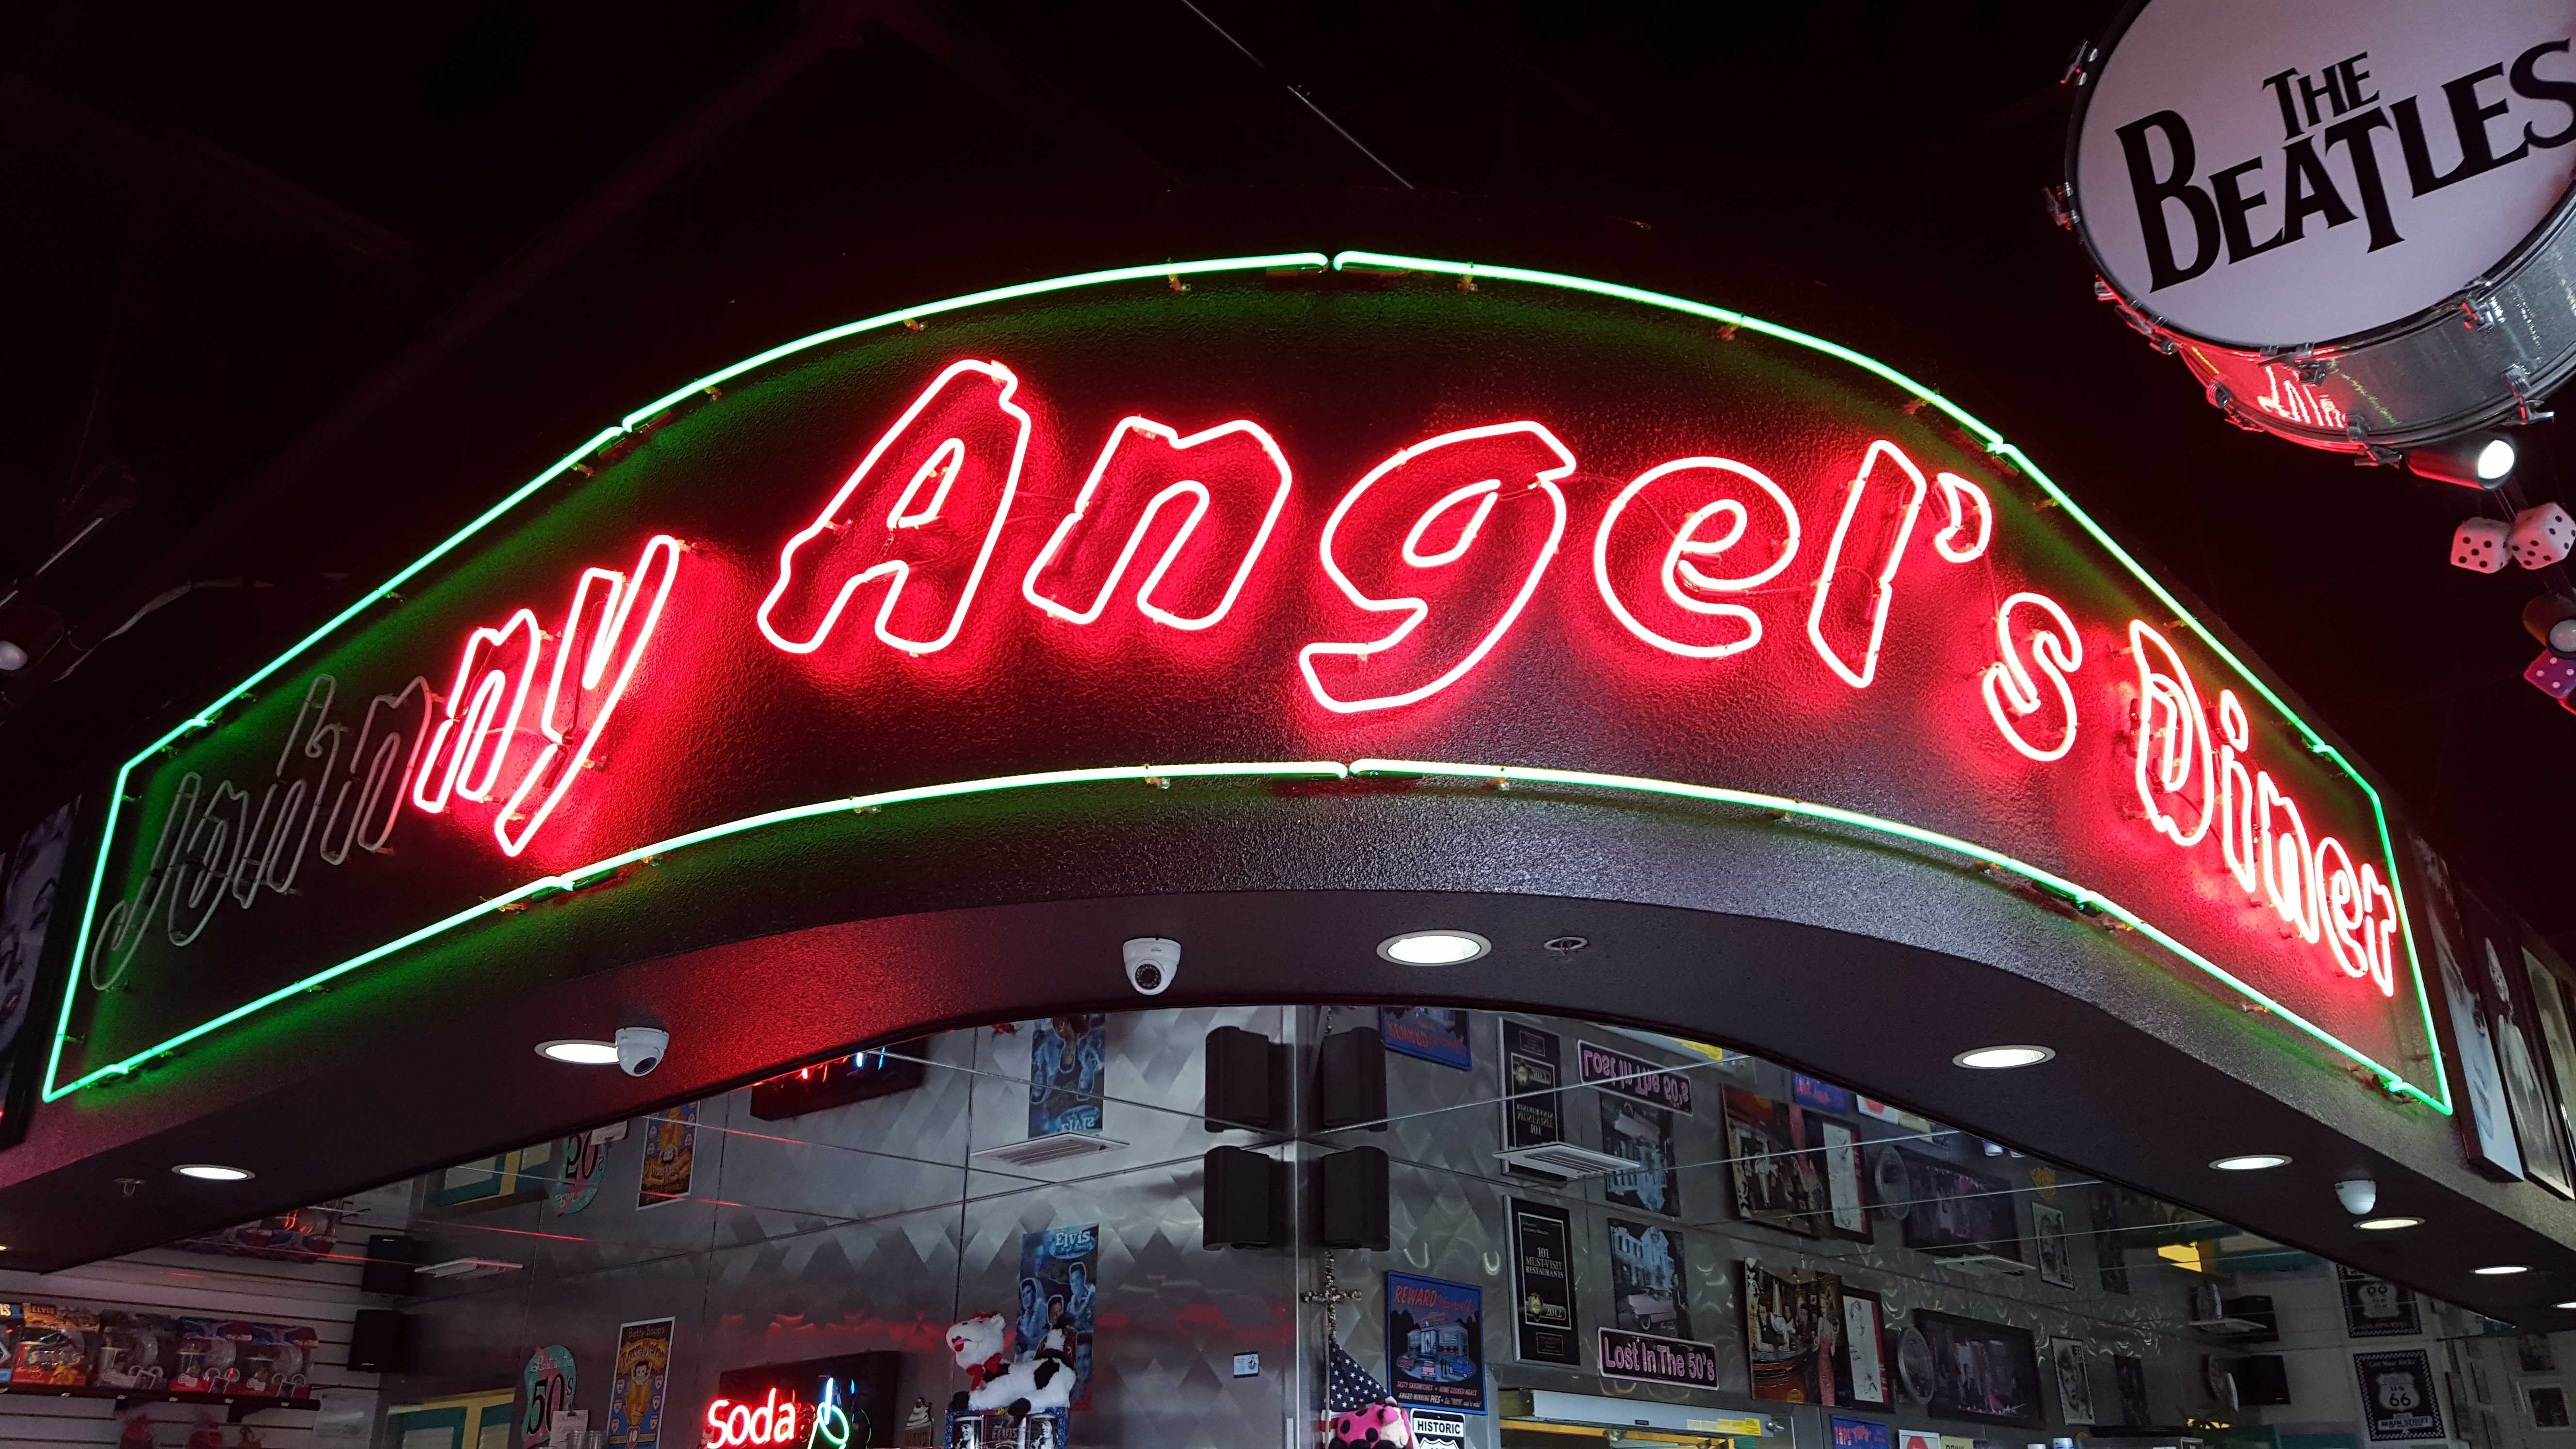 Local Eatery of the Week: Johnny Angel's